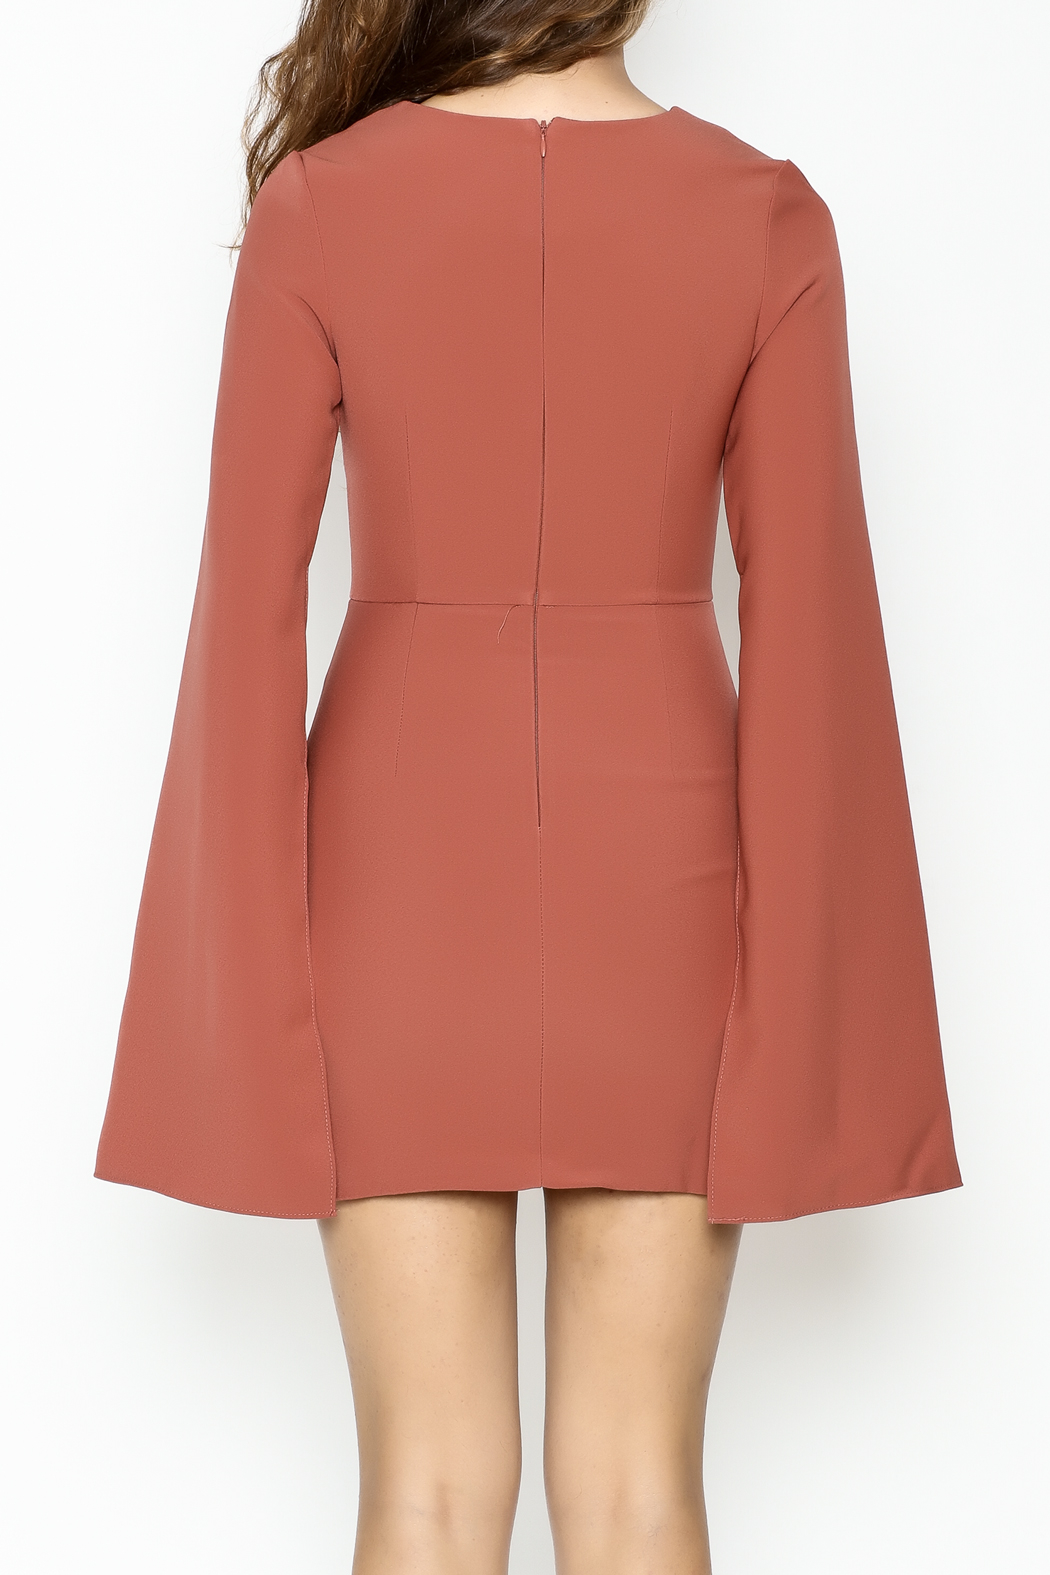 Do & Be Bell Sleeve Dress - Back Cropped Image